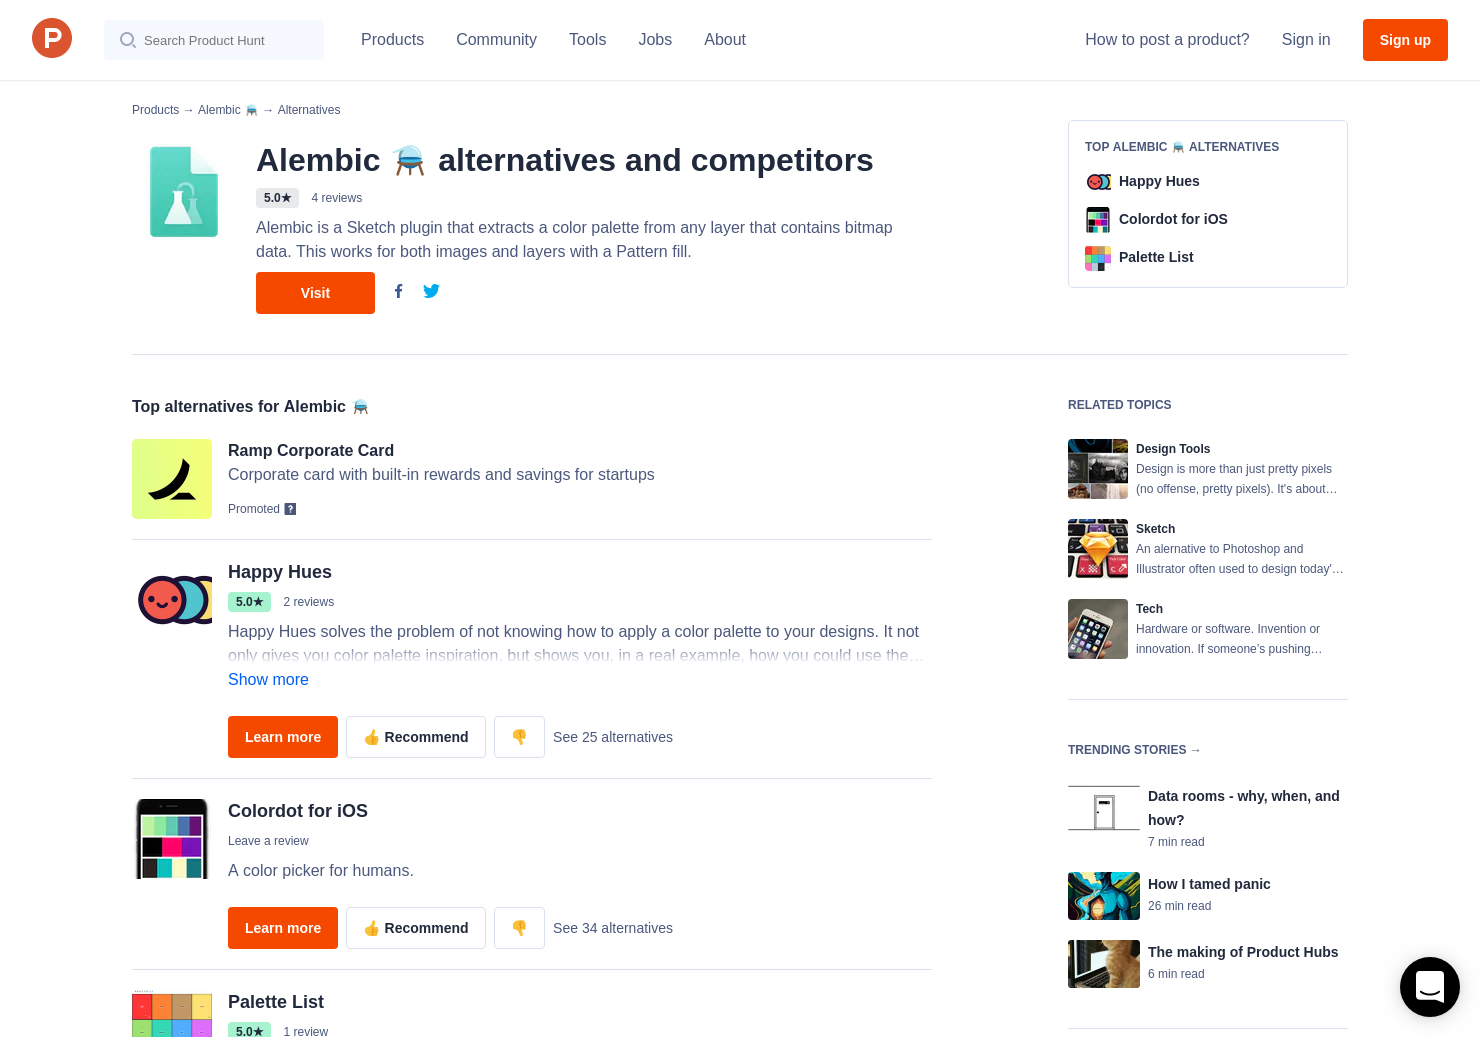 3 alternatives to alembic product hunt